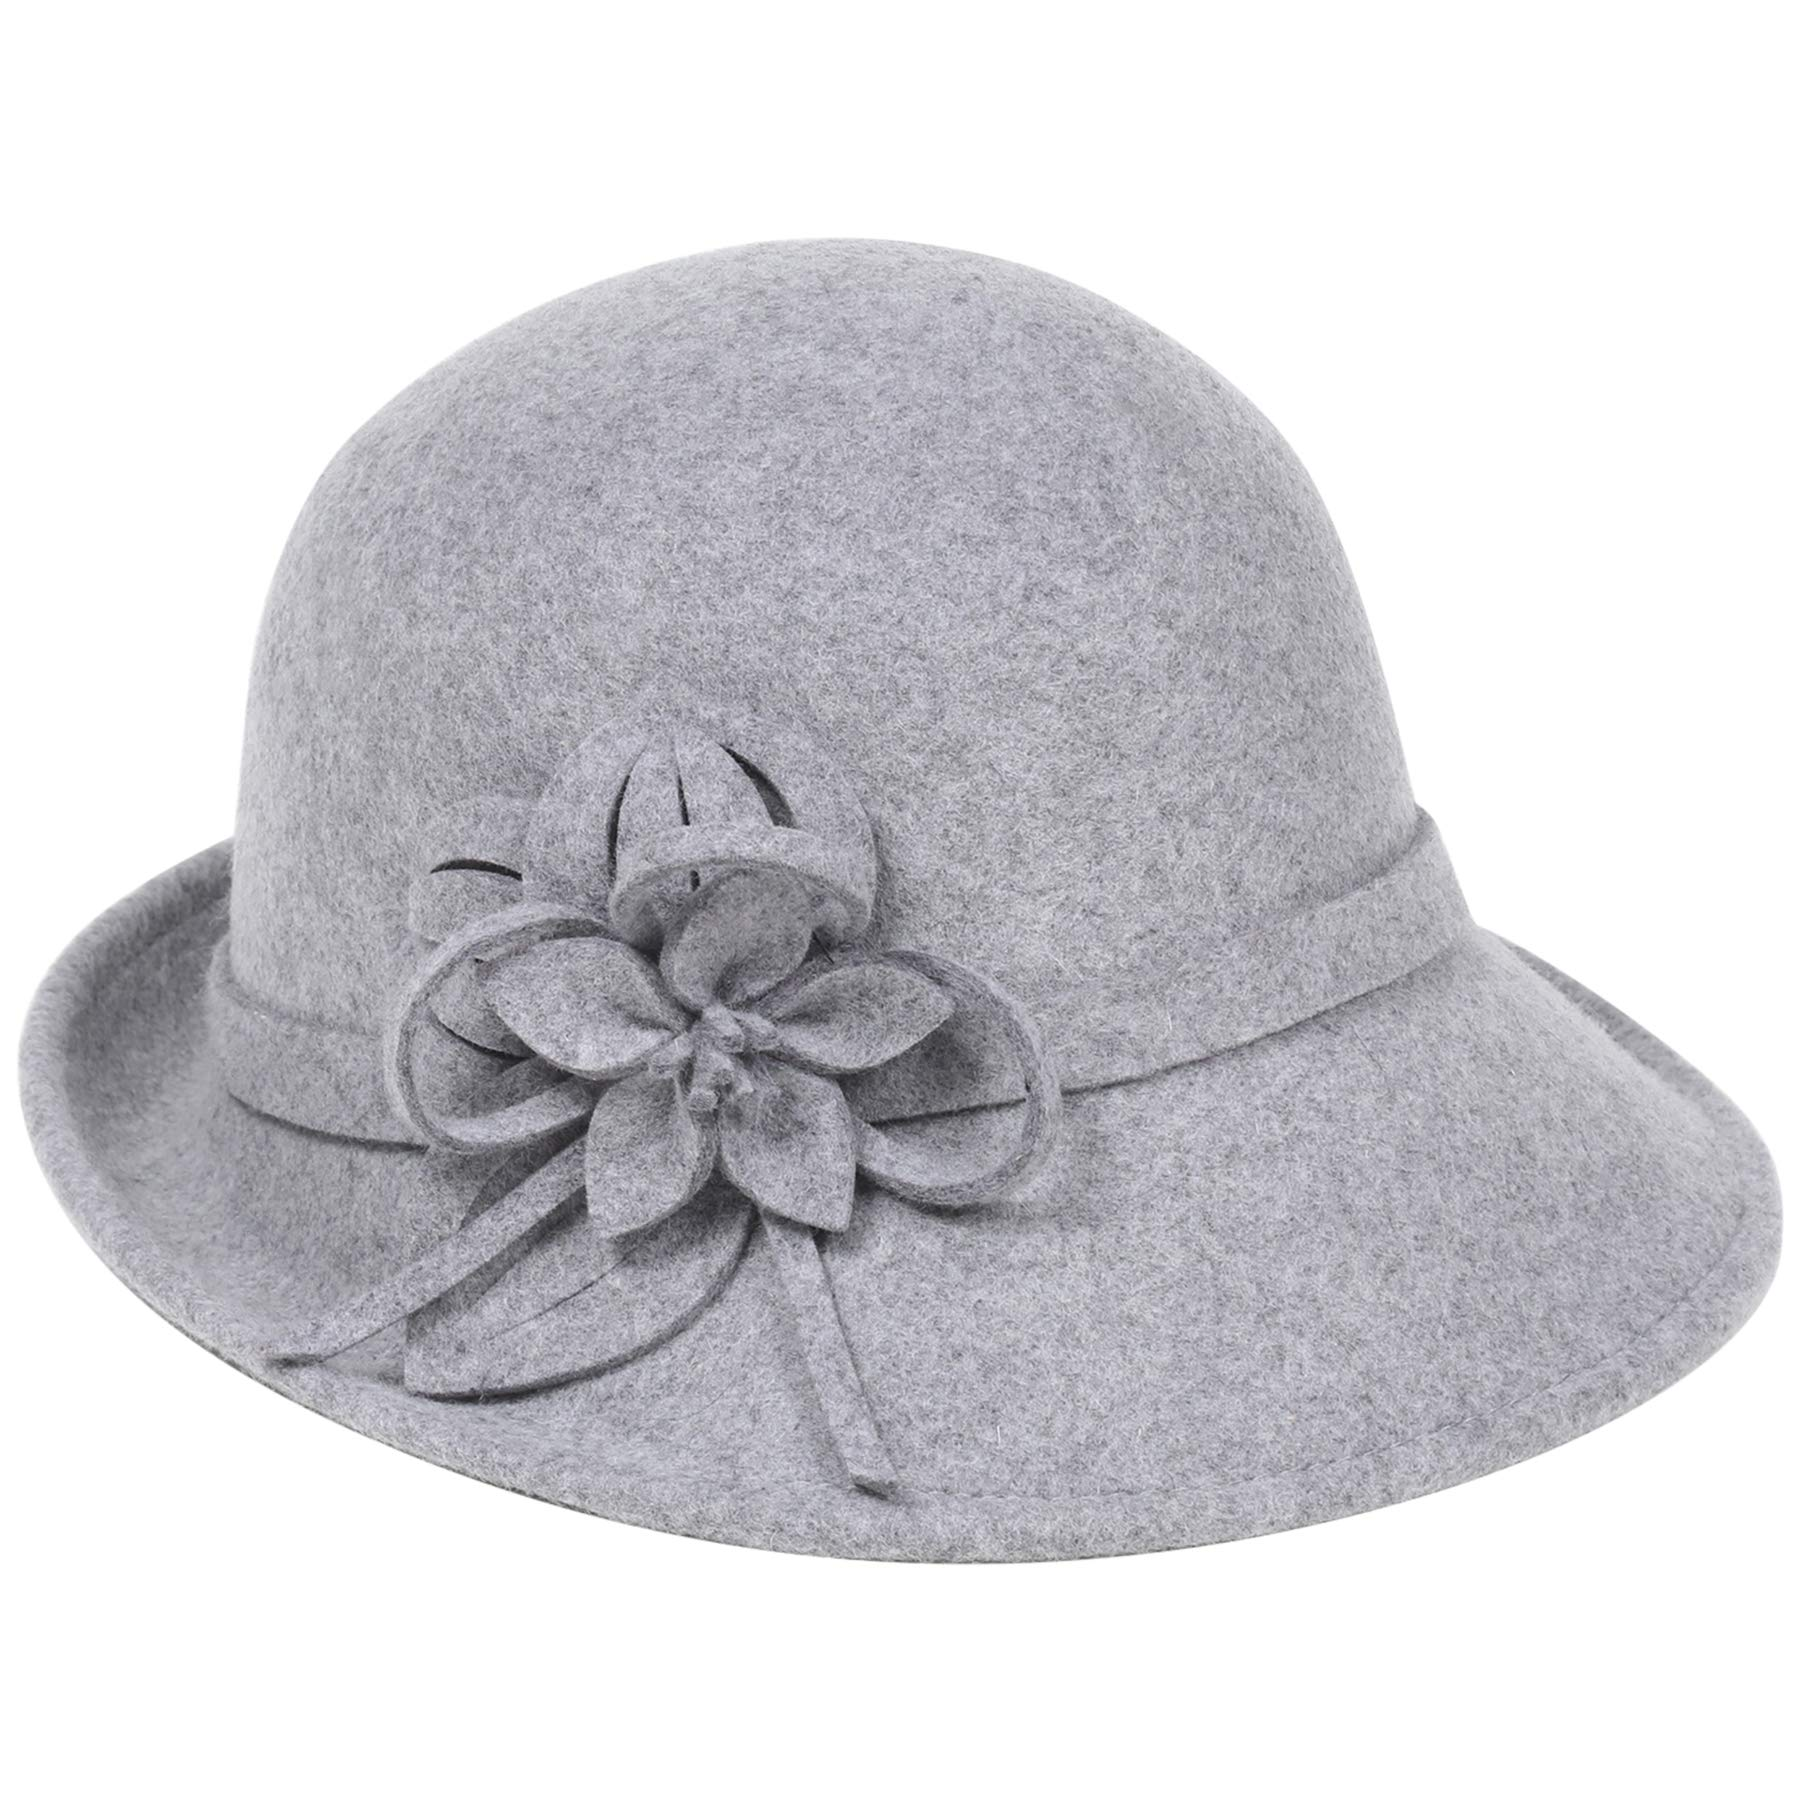 BABEYOND Womens 1920s Bucket Hat Winter Wool Crushable Bowler Hat Vintage Cloche Round Hat with Floral Accent (Grey)